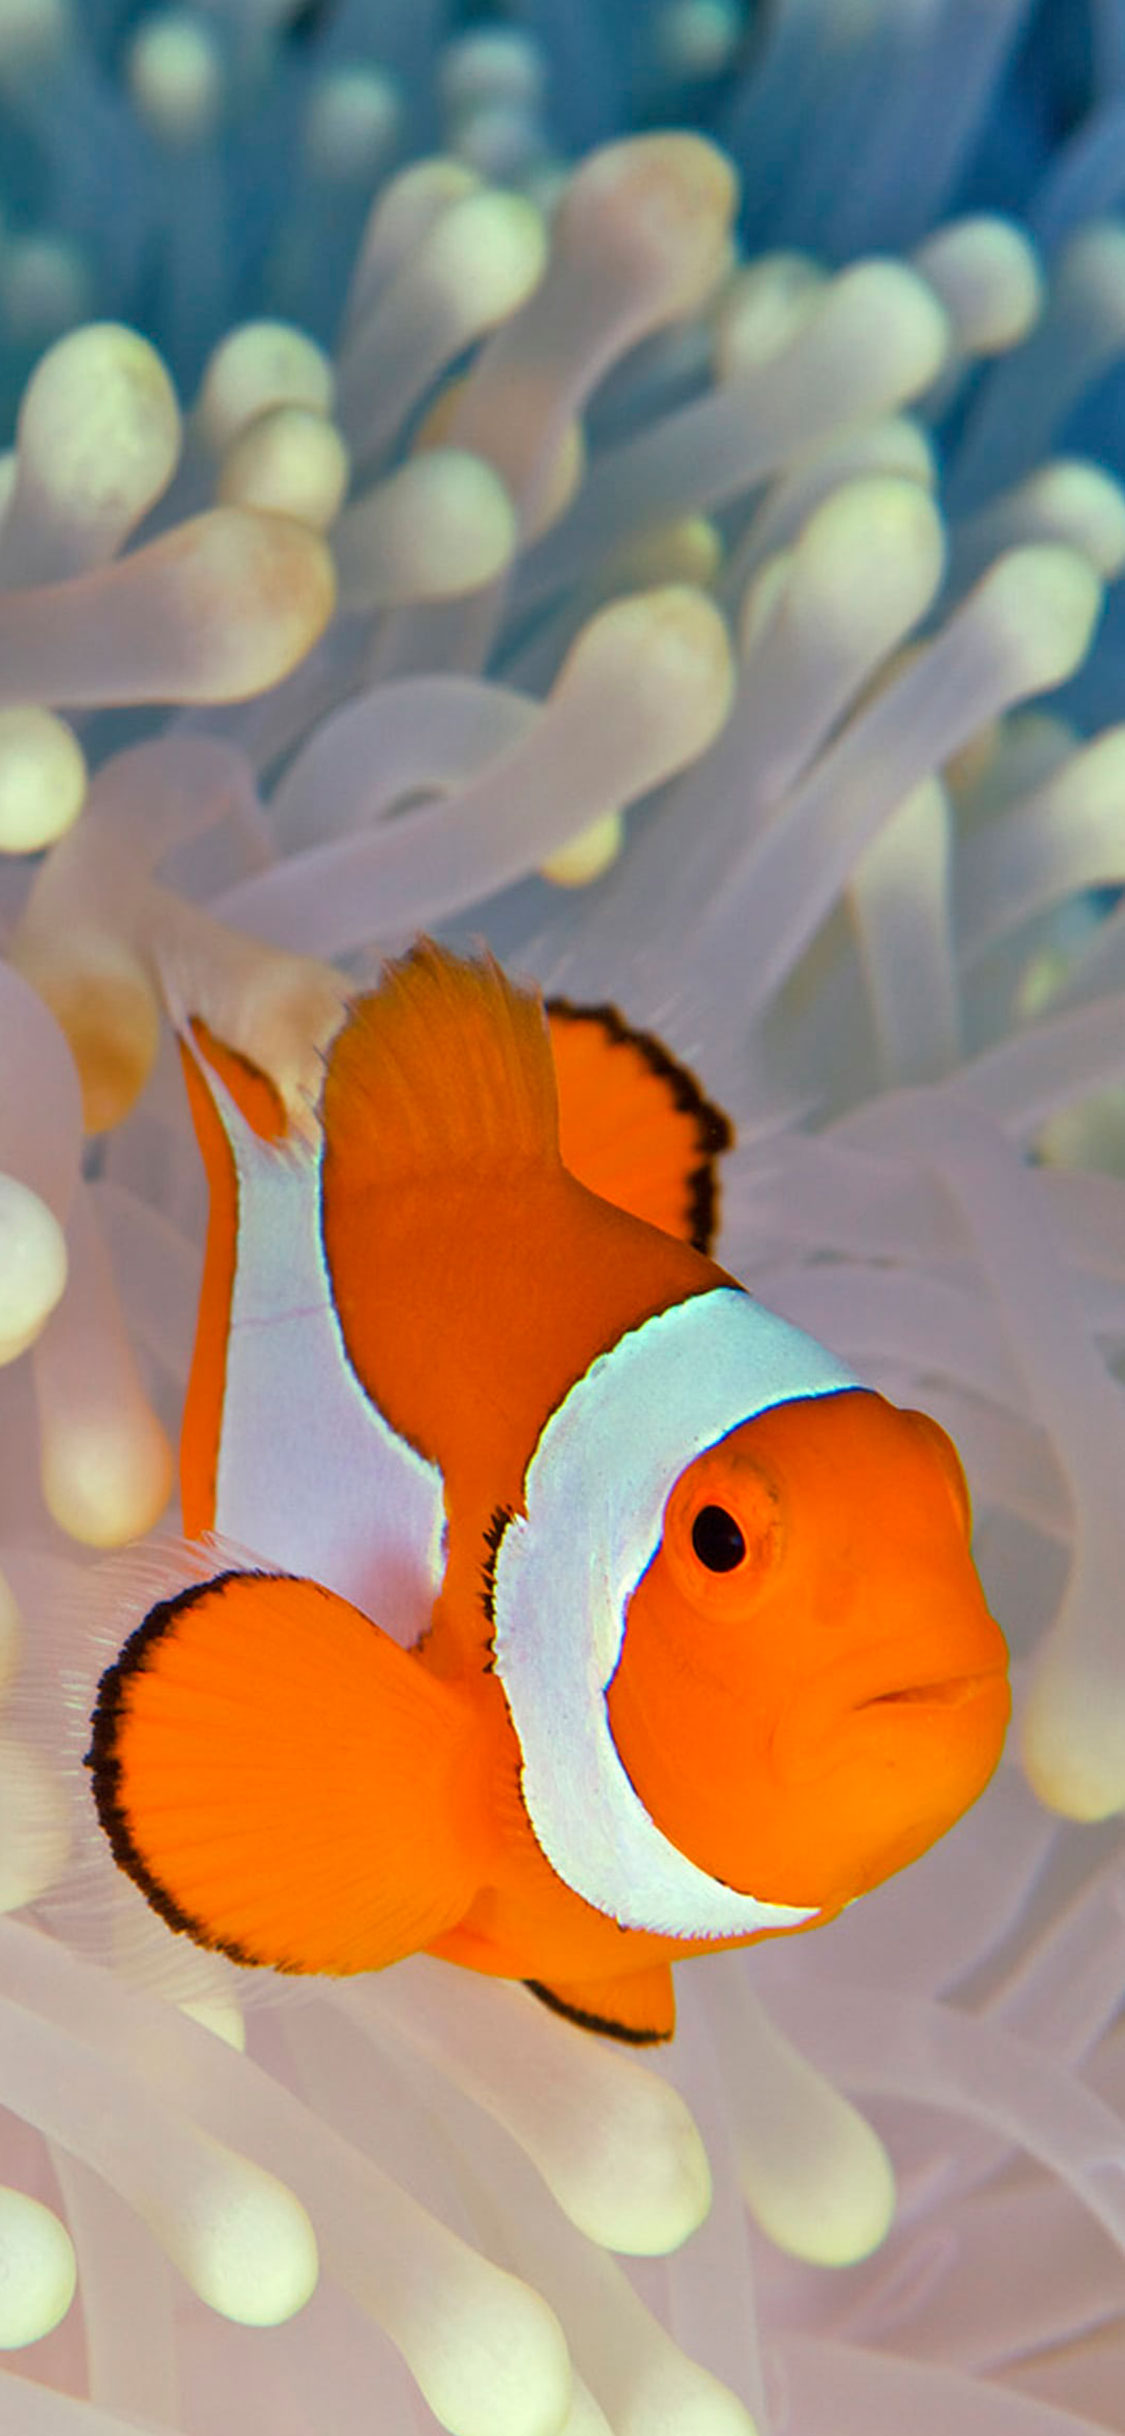 iPhone wallpaper clownfish 2 Fonds d'écran iPhone du 08/06/2018